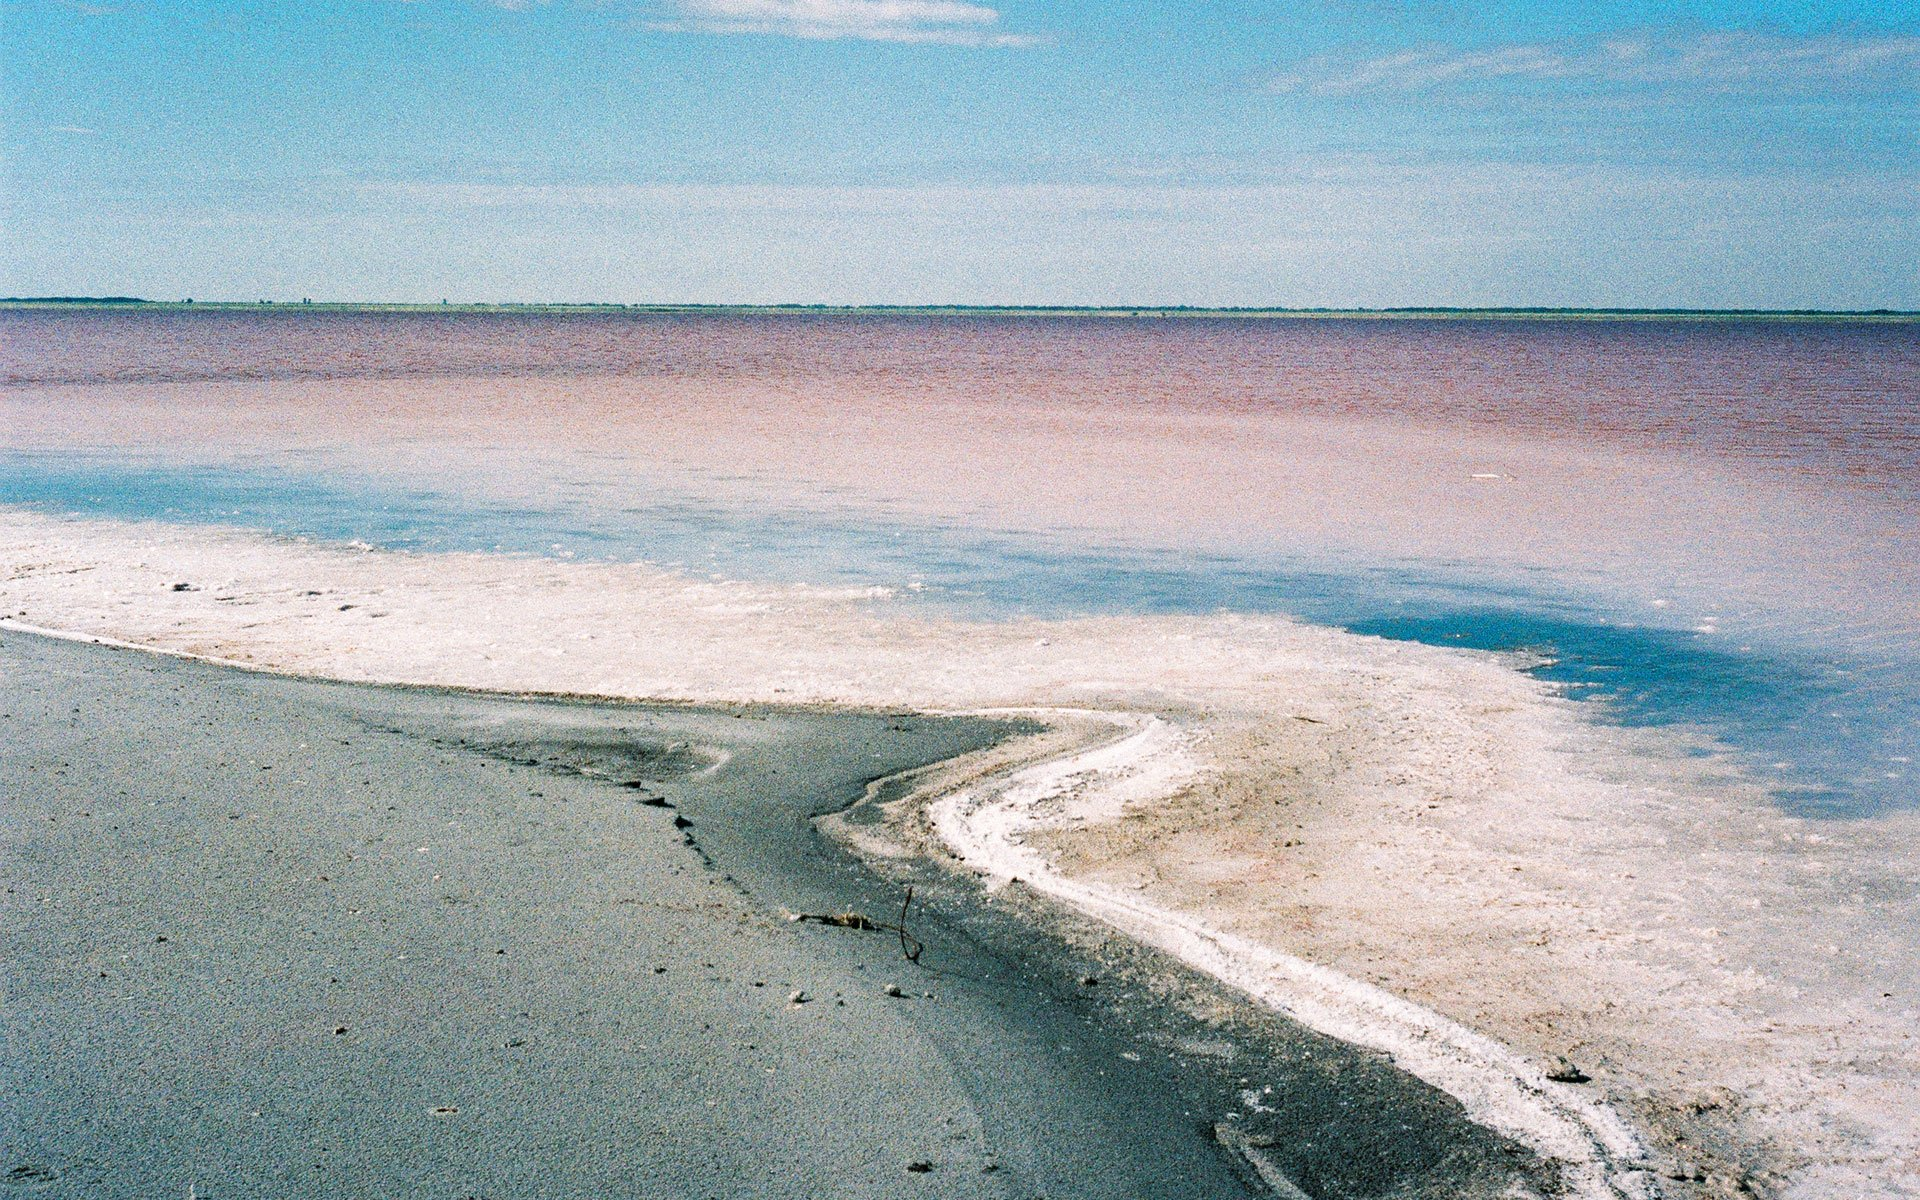 Exquisite photos of Siberia's candy pink lake